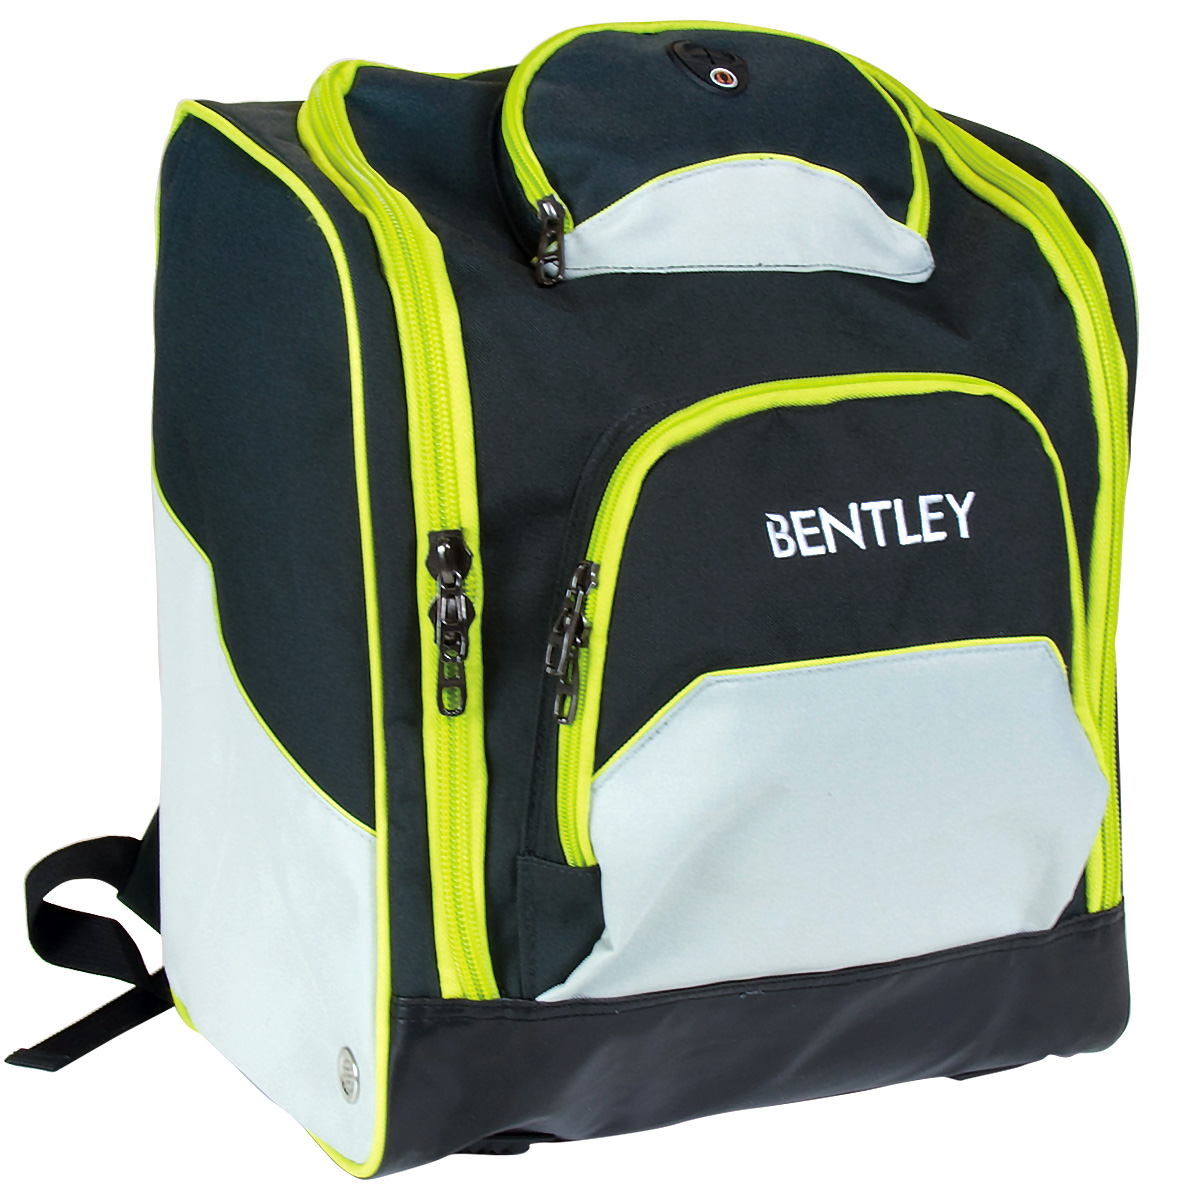 bentley skistiefel tasche rucksack deluxe blau oder rosa schwarz kariert ebay. Black Bedroom Furniture Sets. Home Design Ideas